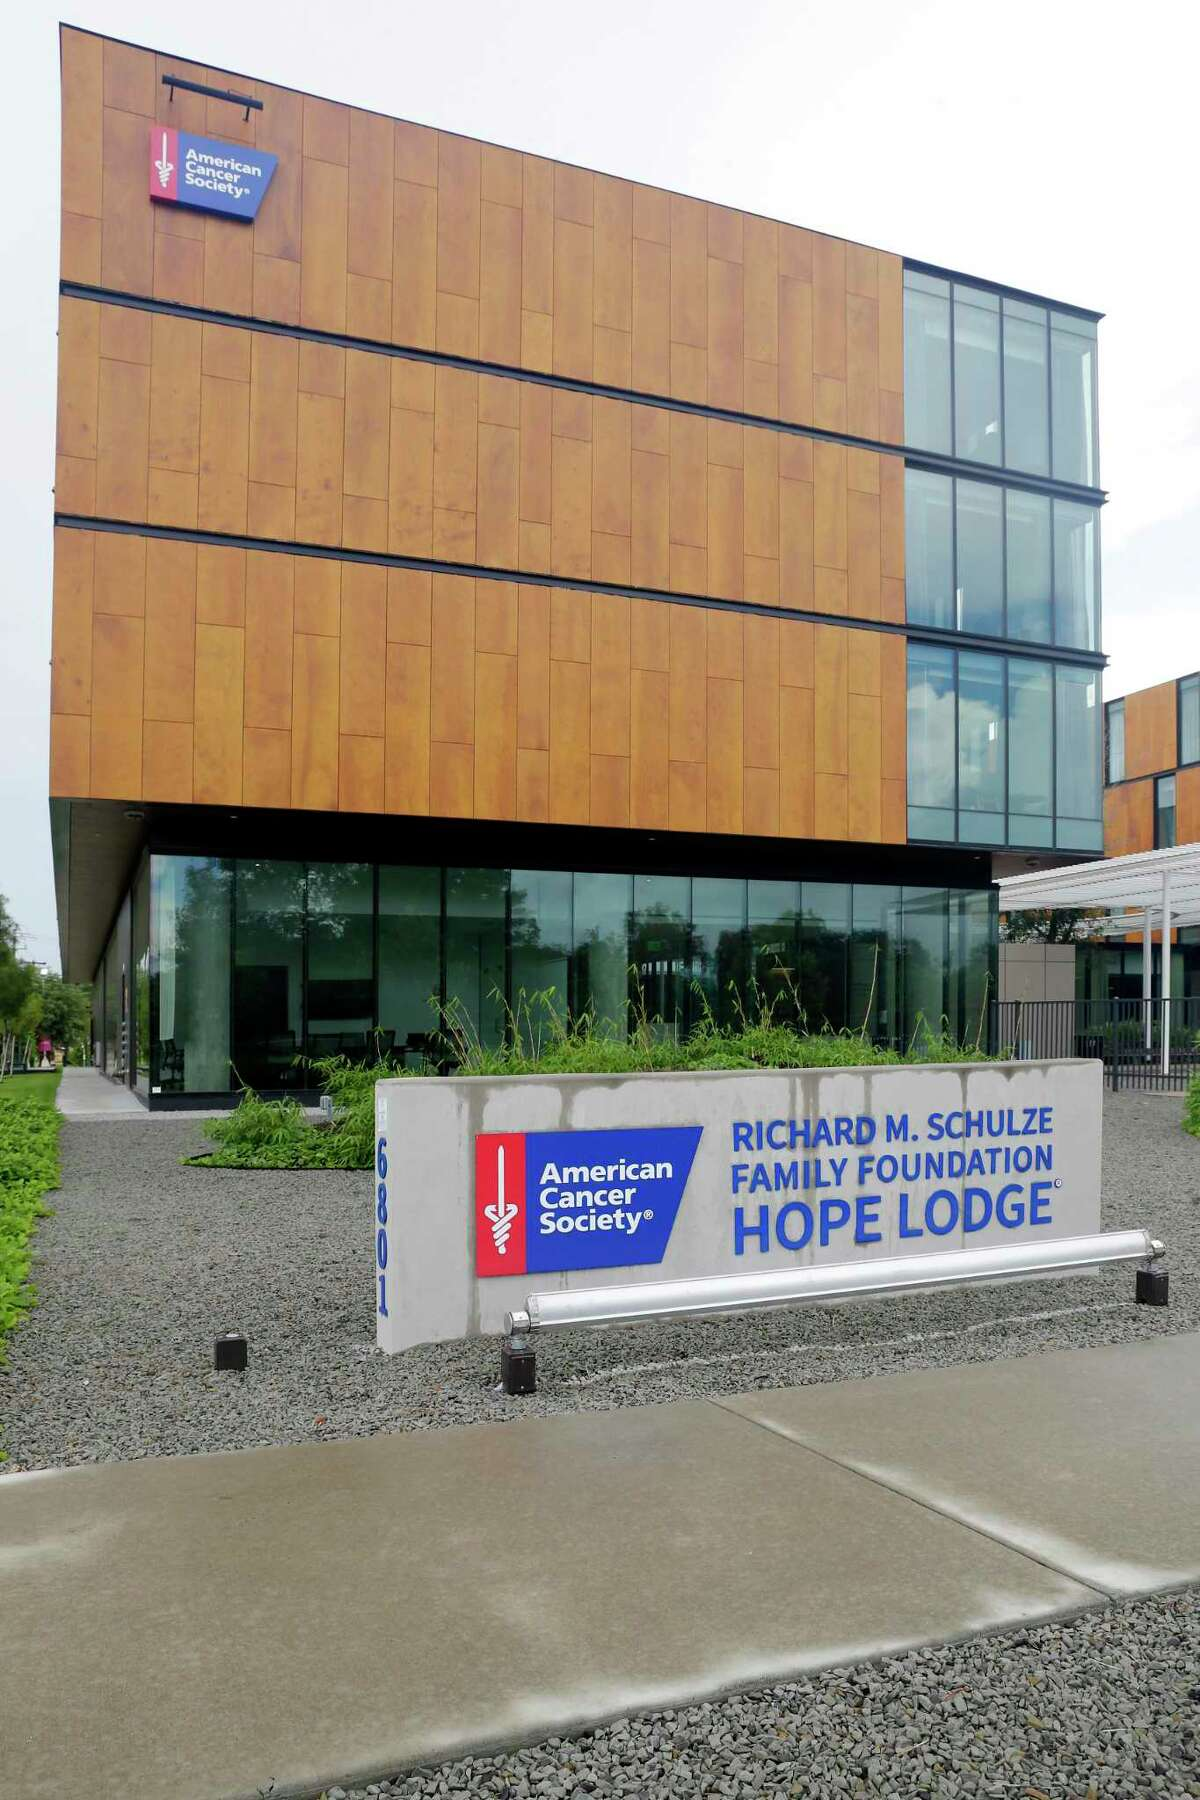 Exterior of the new American Cancer Society Hope Lodge, a facility for temporary lodging of cancer patients during treatment Tuesday, June 29, 2021 in Houston, TX.